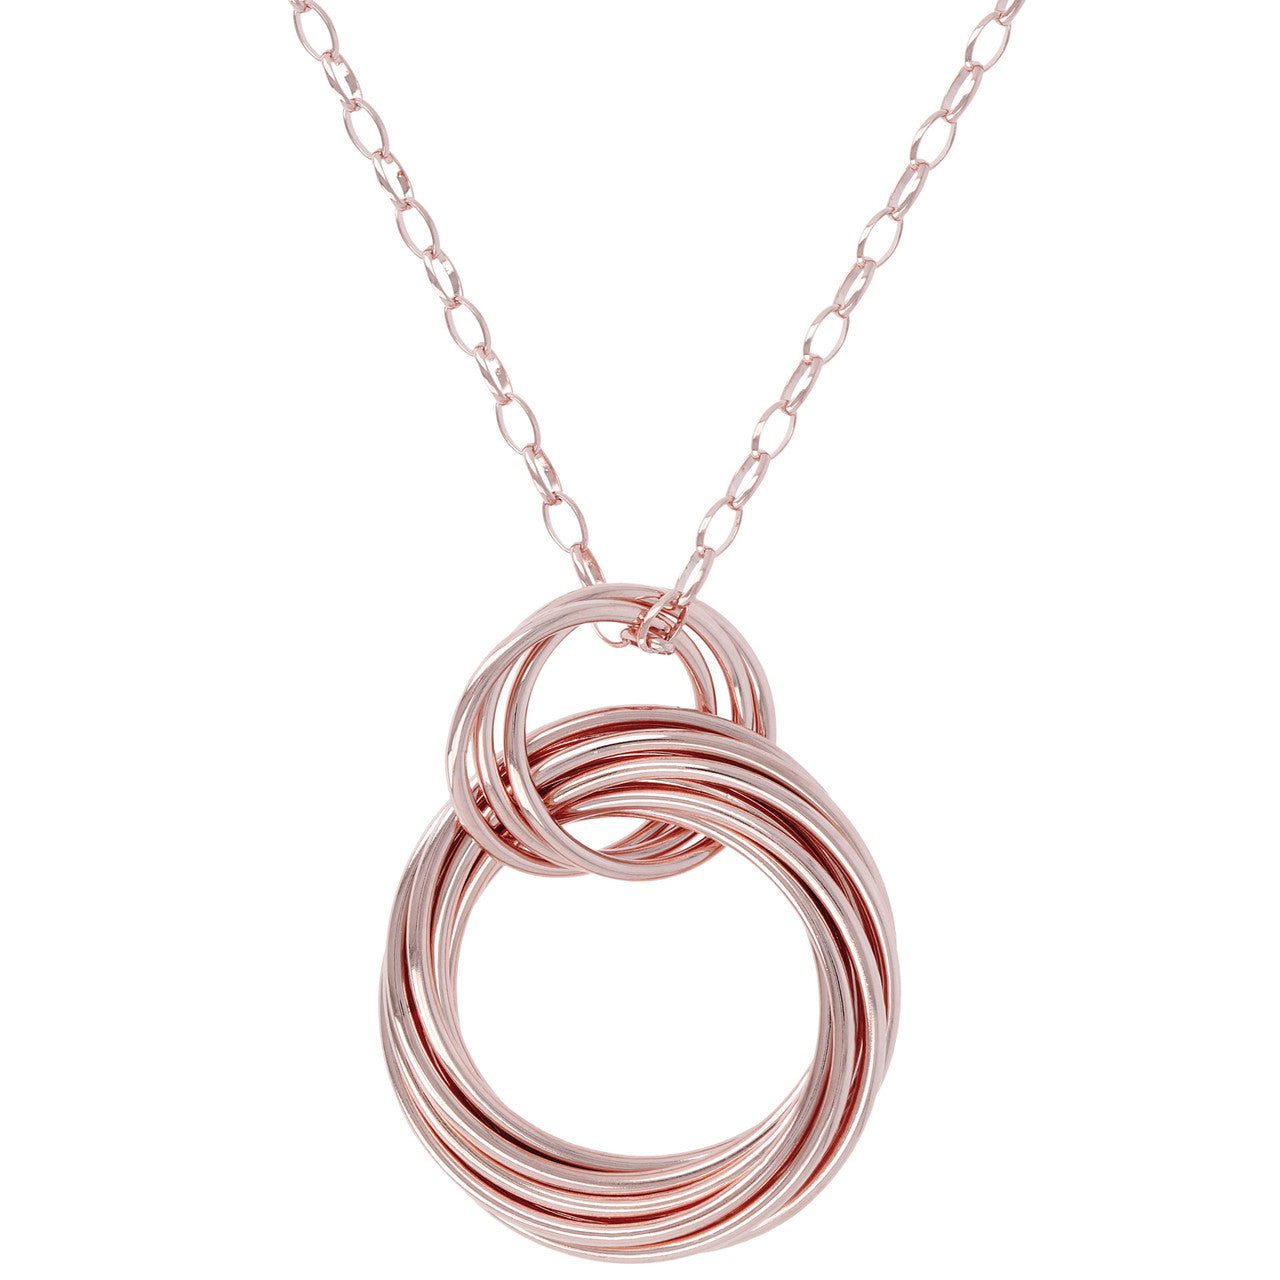 Purezza Textured Pendant Necklace